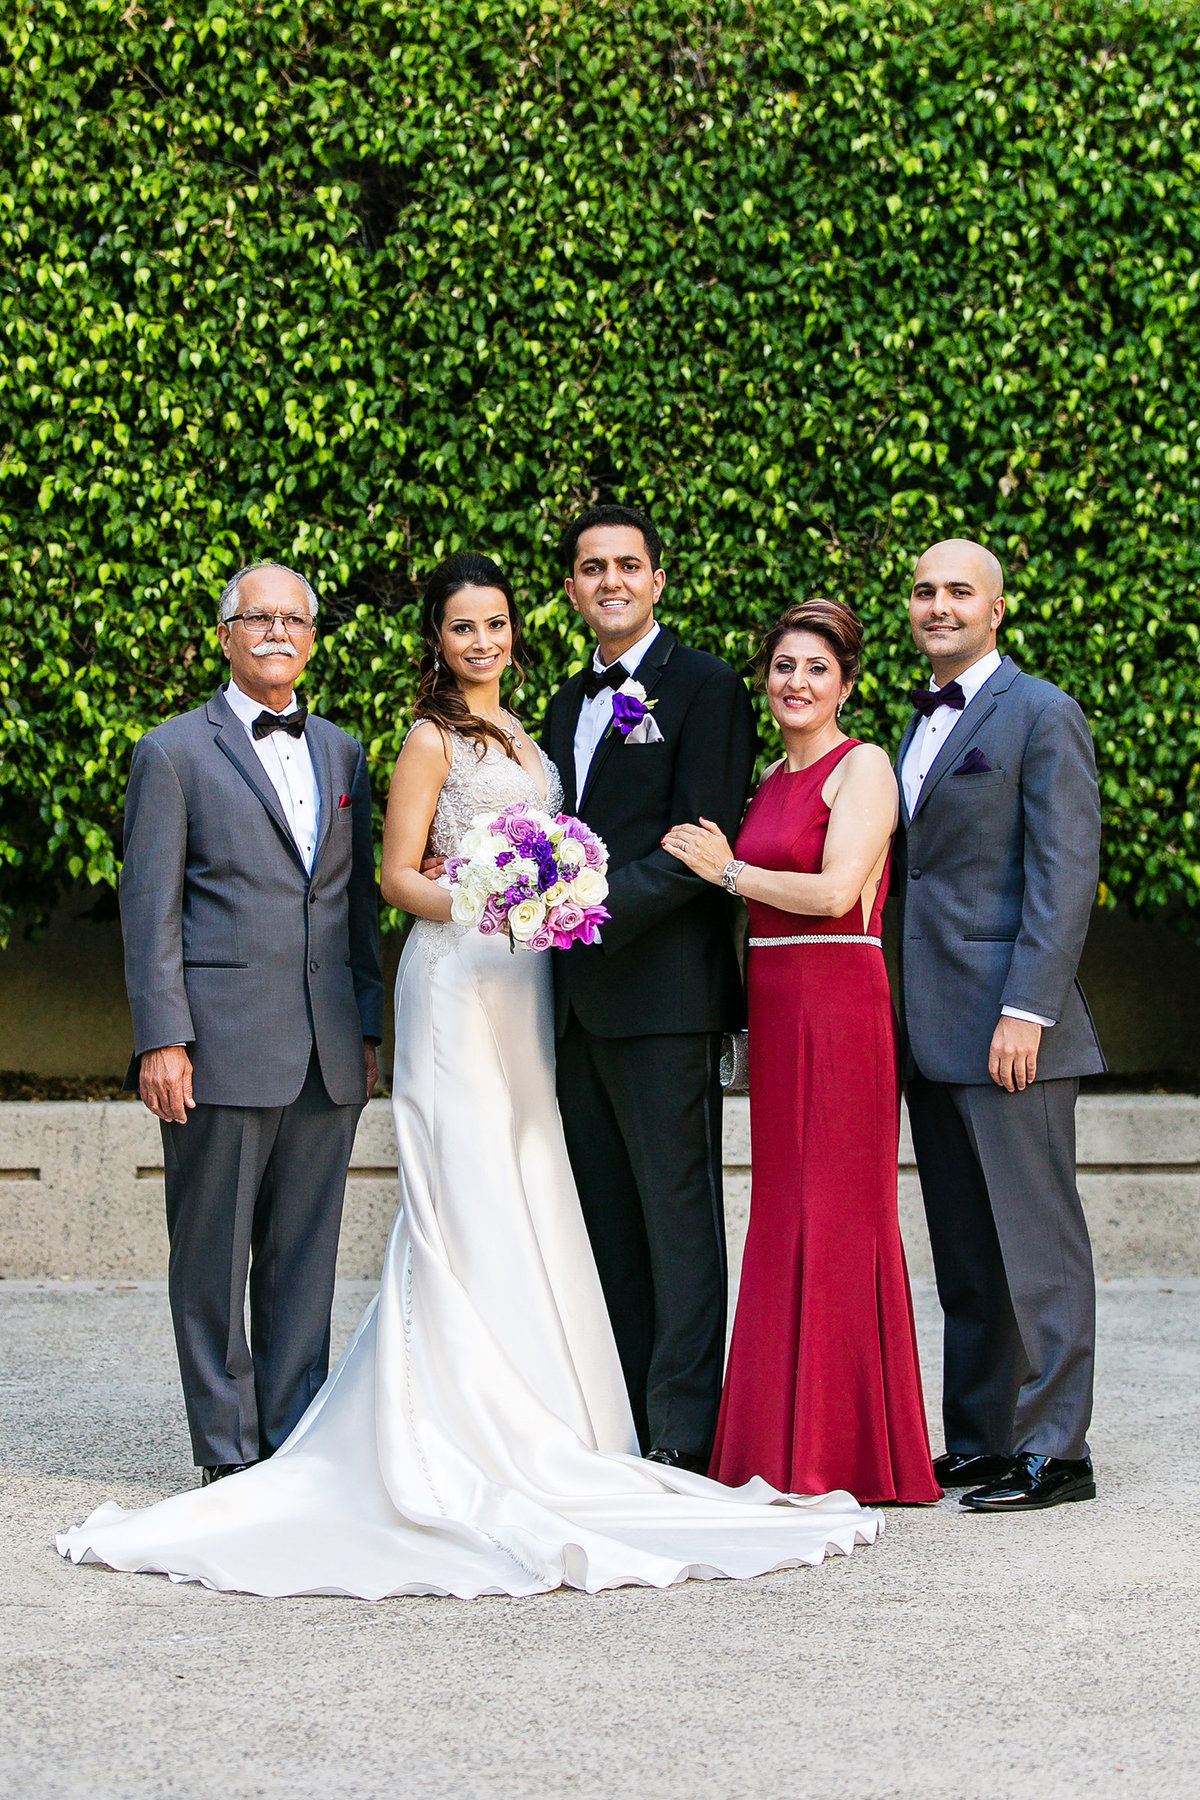 067-hotel-irvine-wedding-photos-sugandha-farzan